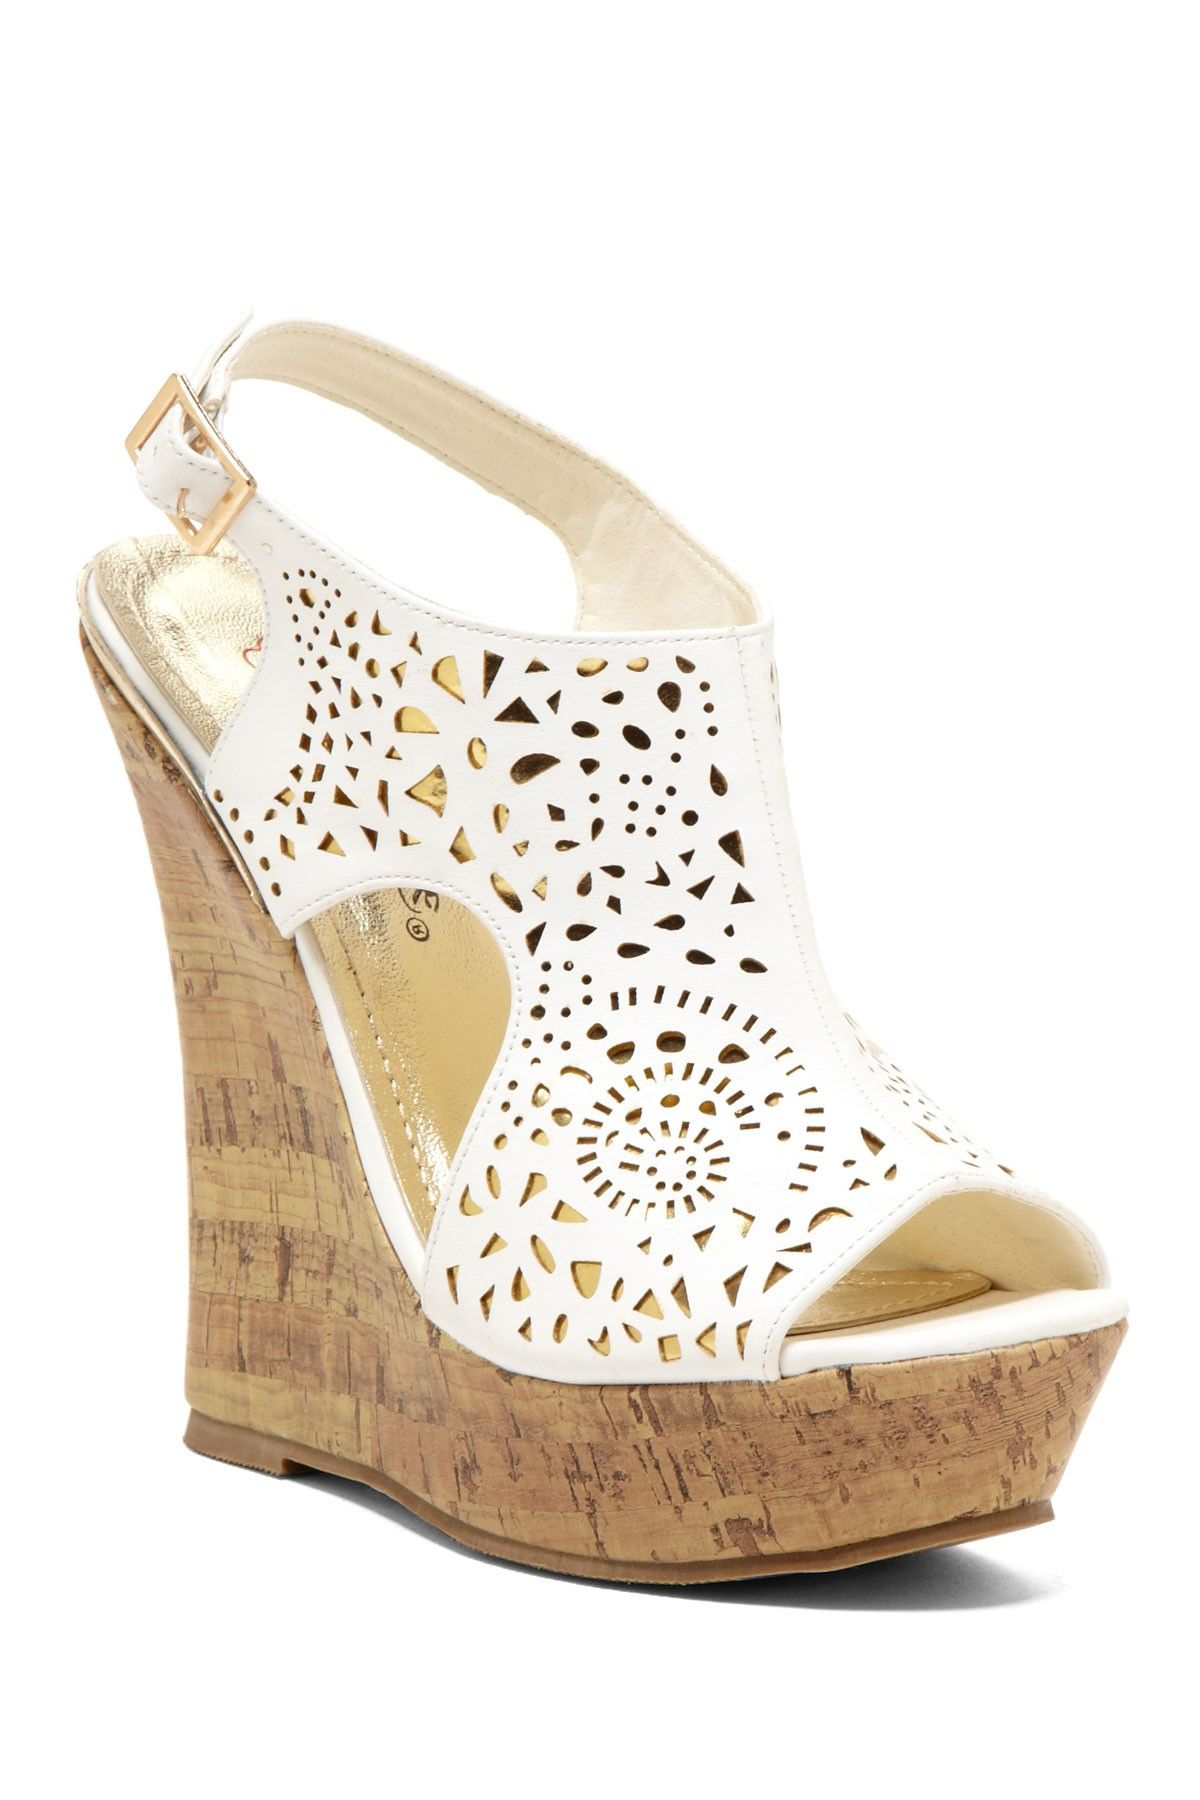 Nanti Laser Cut Wedge Sandal Just Wish I Didn T Trip In